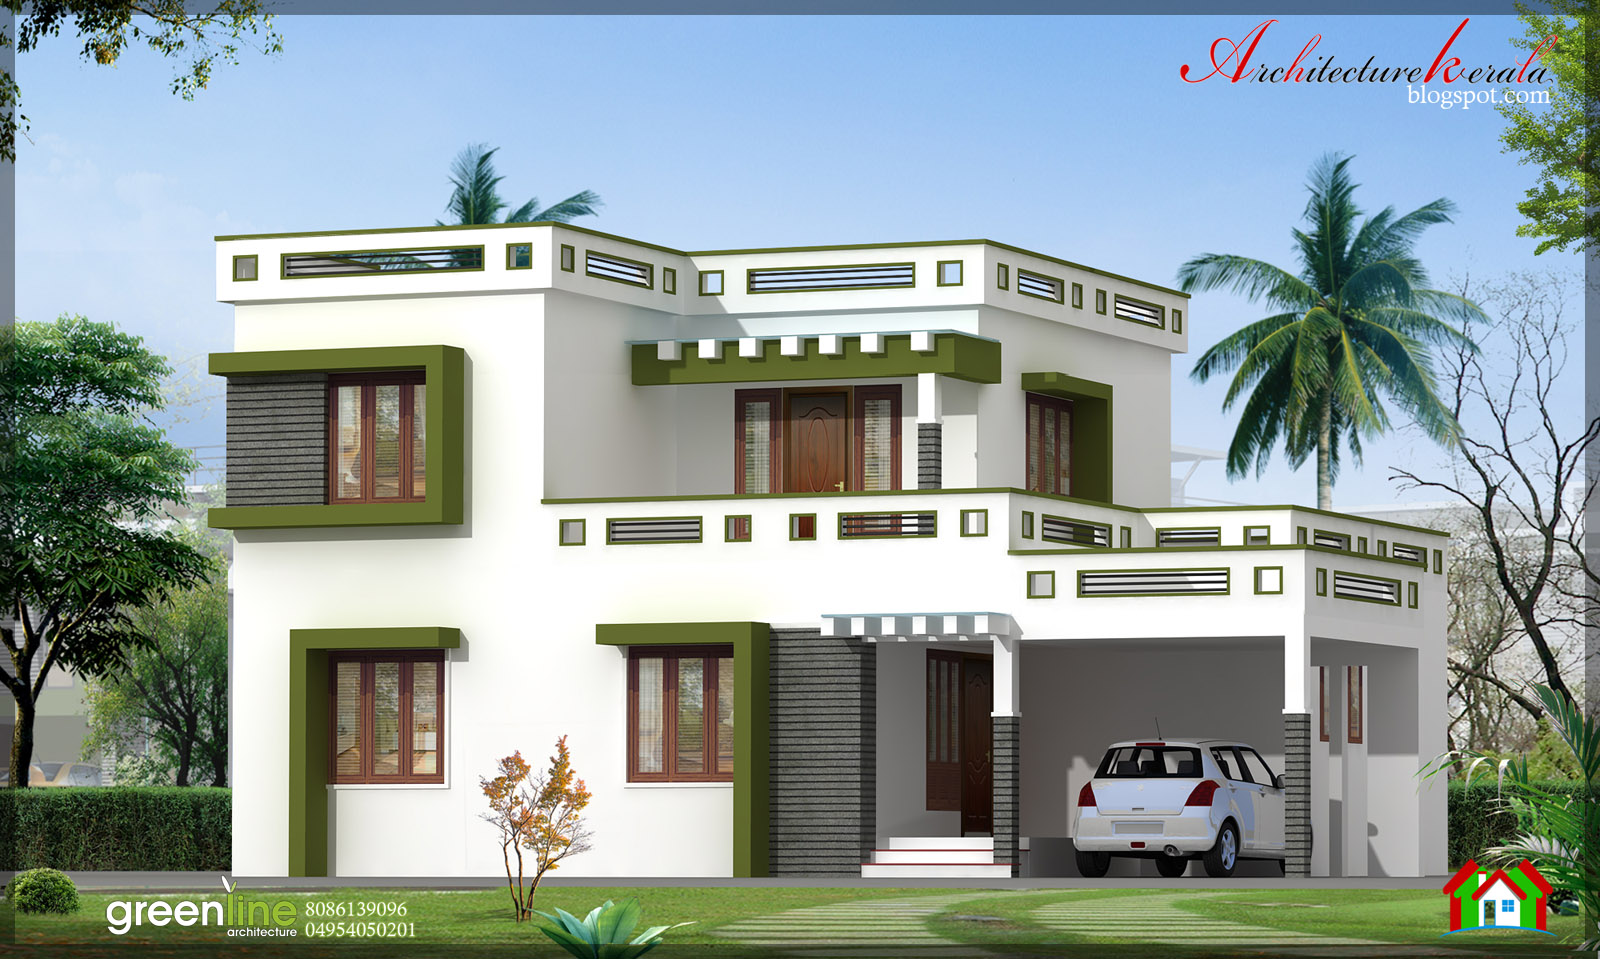 Bon 3 BHK NEW MODERN STYLE KERALA HOME DESIGN IN 1700 SQ FT